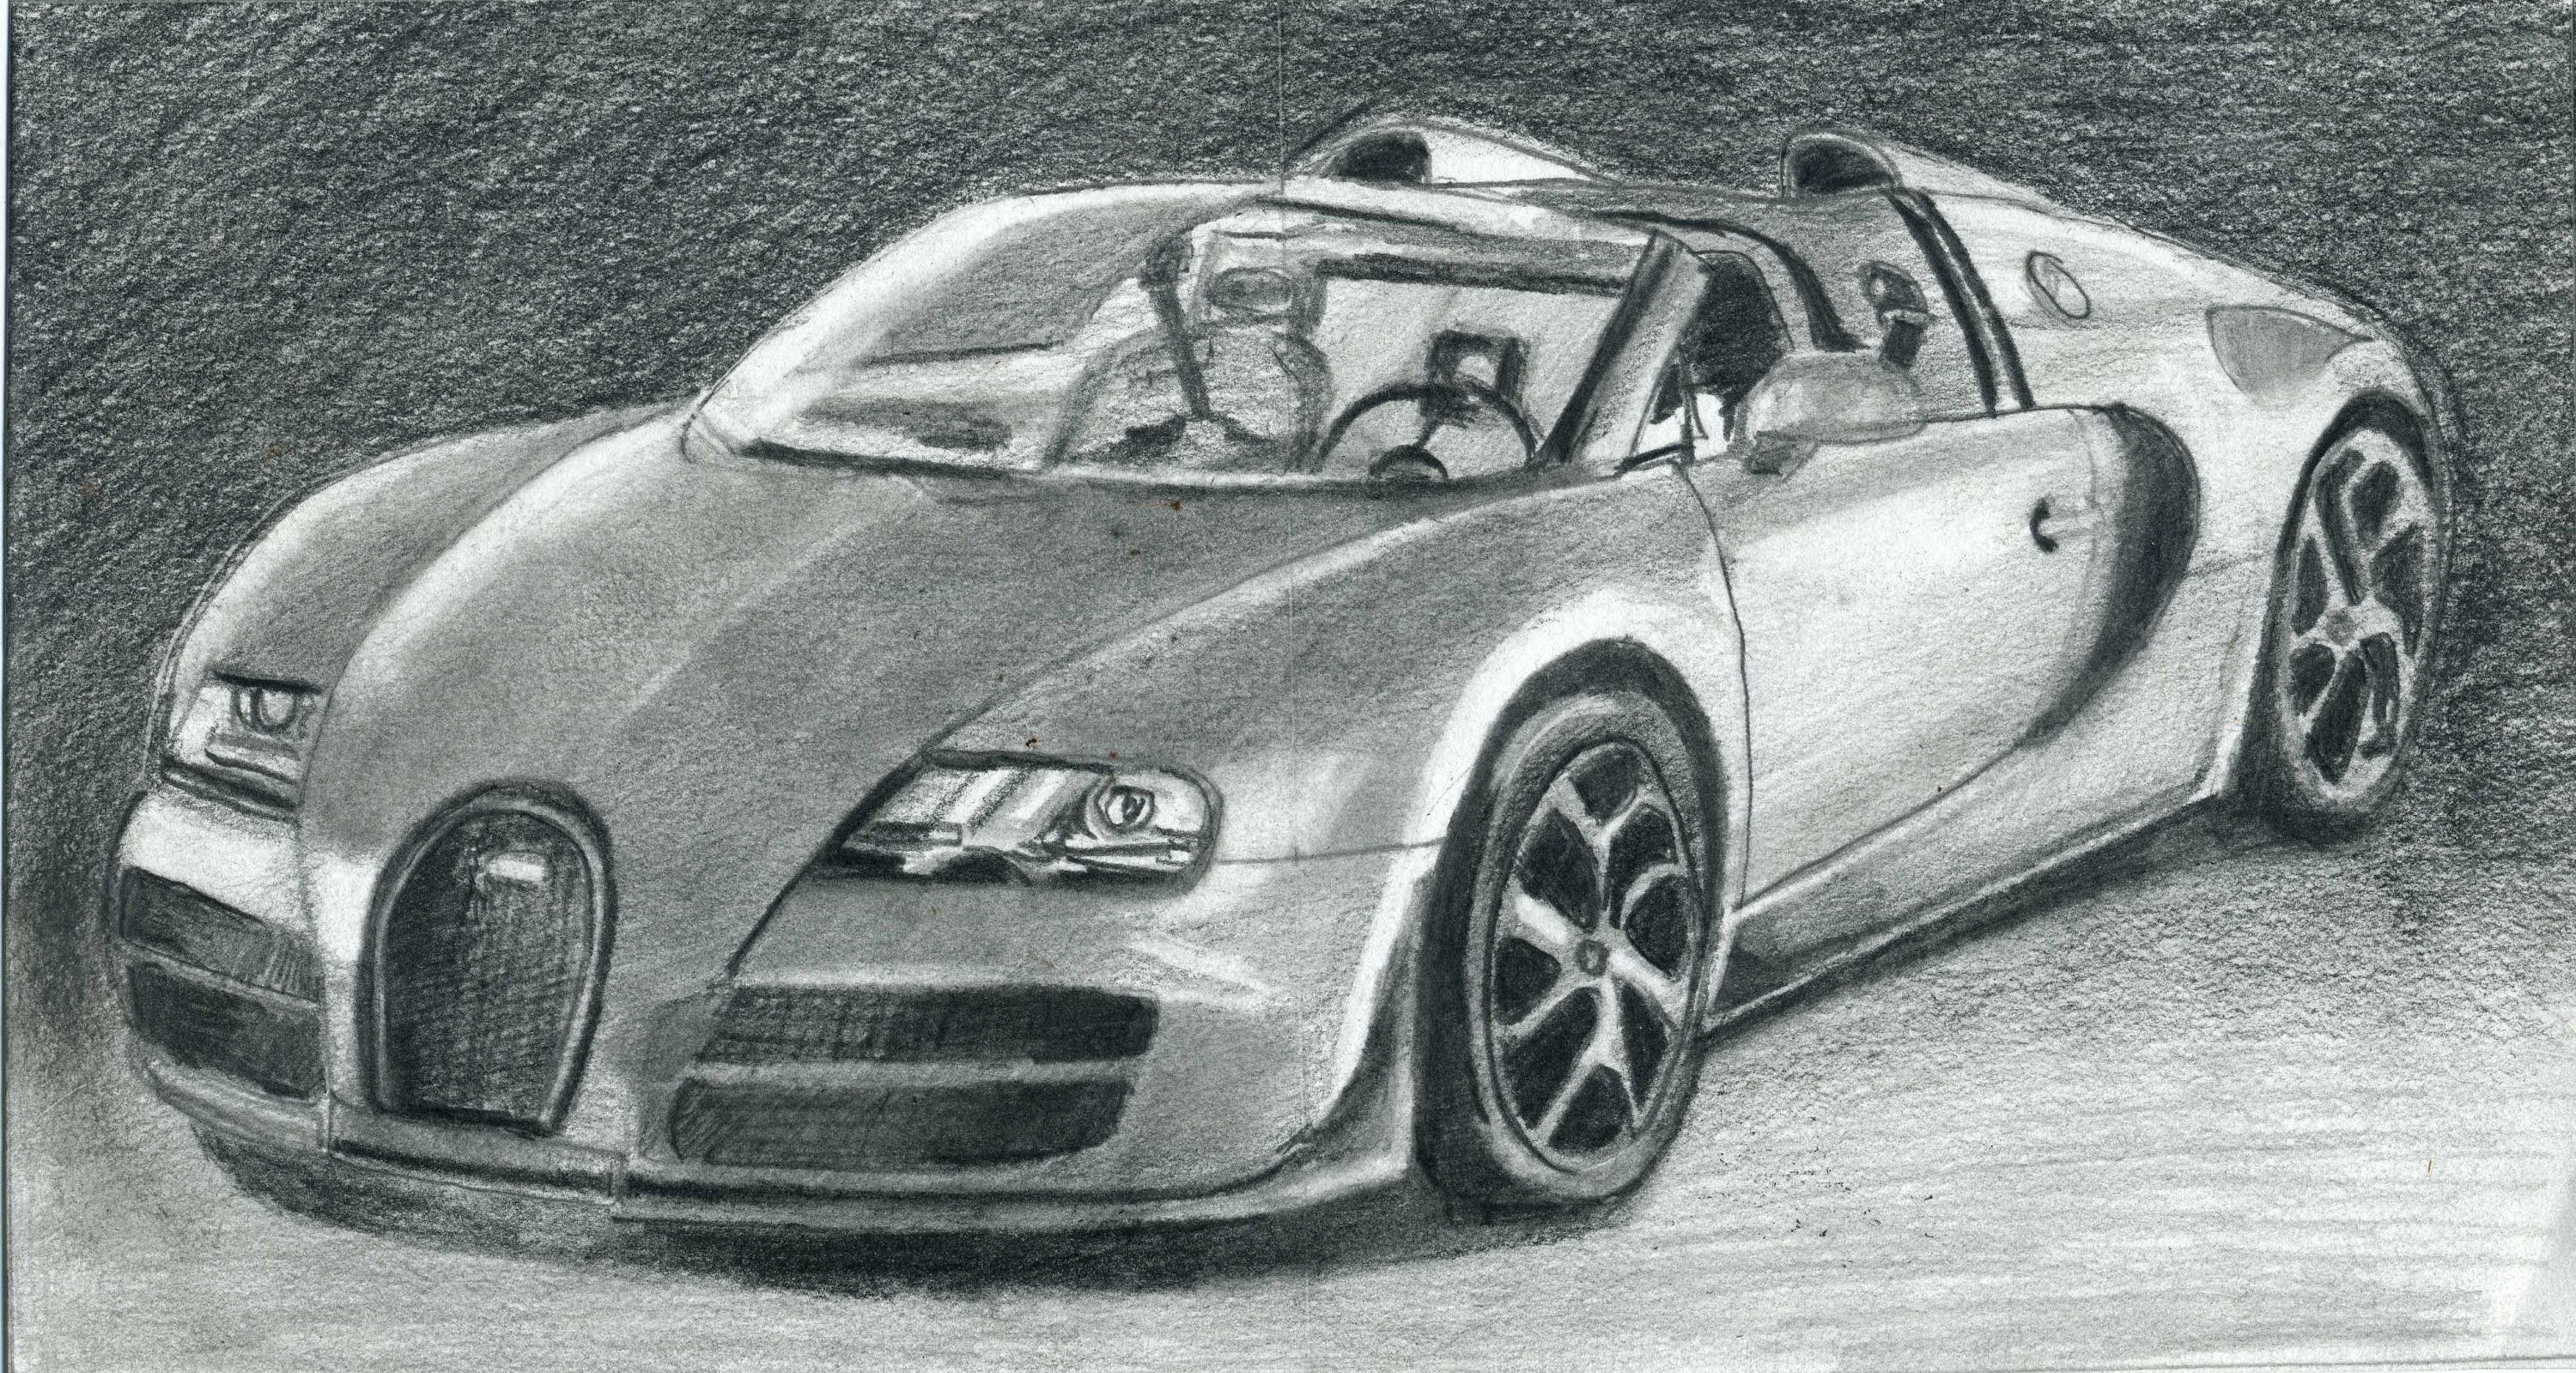 How To Draw Bugatti Veyron Super Car Step By Step With Images